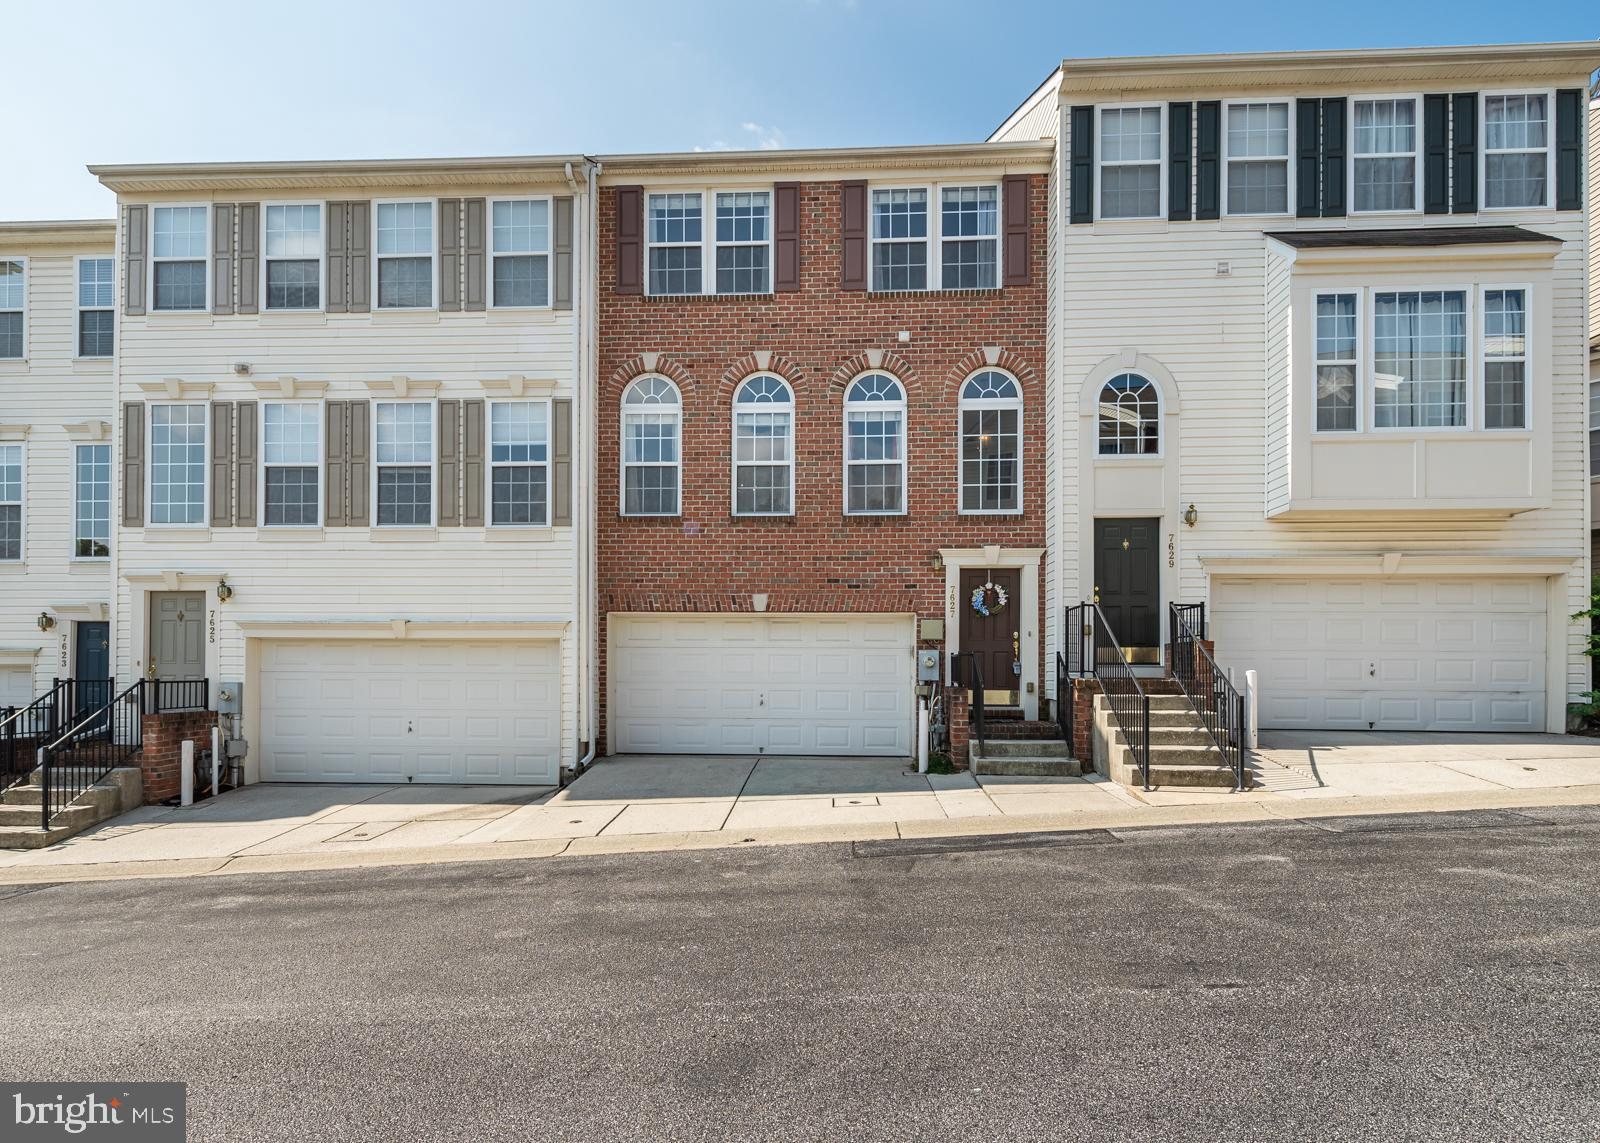 Lovely 3 bedroom, 2.5 bath brick front townhome situated across from neighborhood pool, home feature